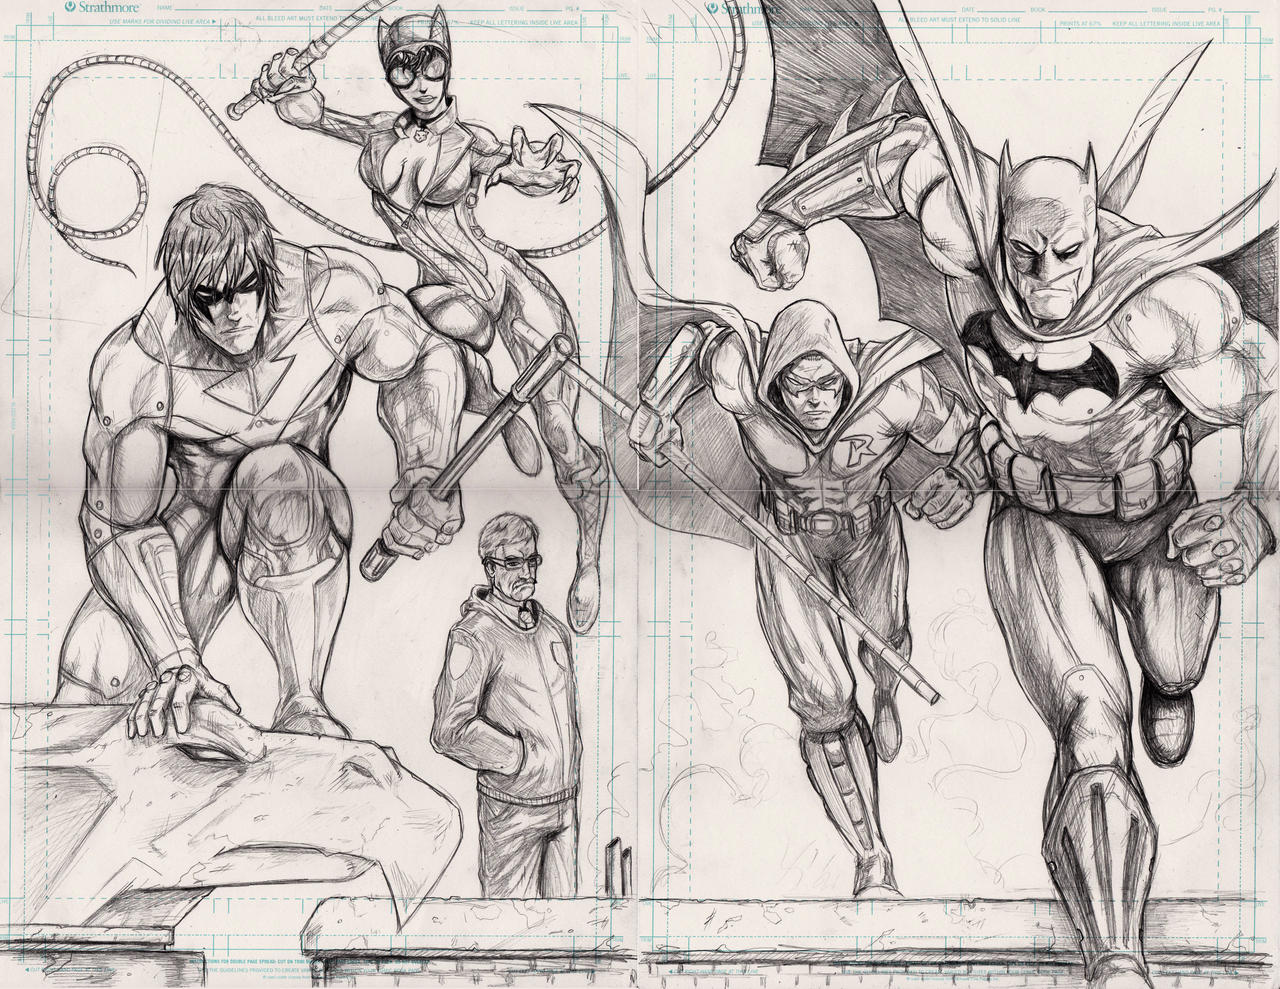 Coloring Pages Batman Arkham Asylum Coloring Pages batman arkham city pencils by wil woods on deviantart woods